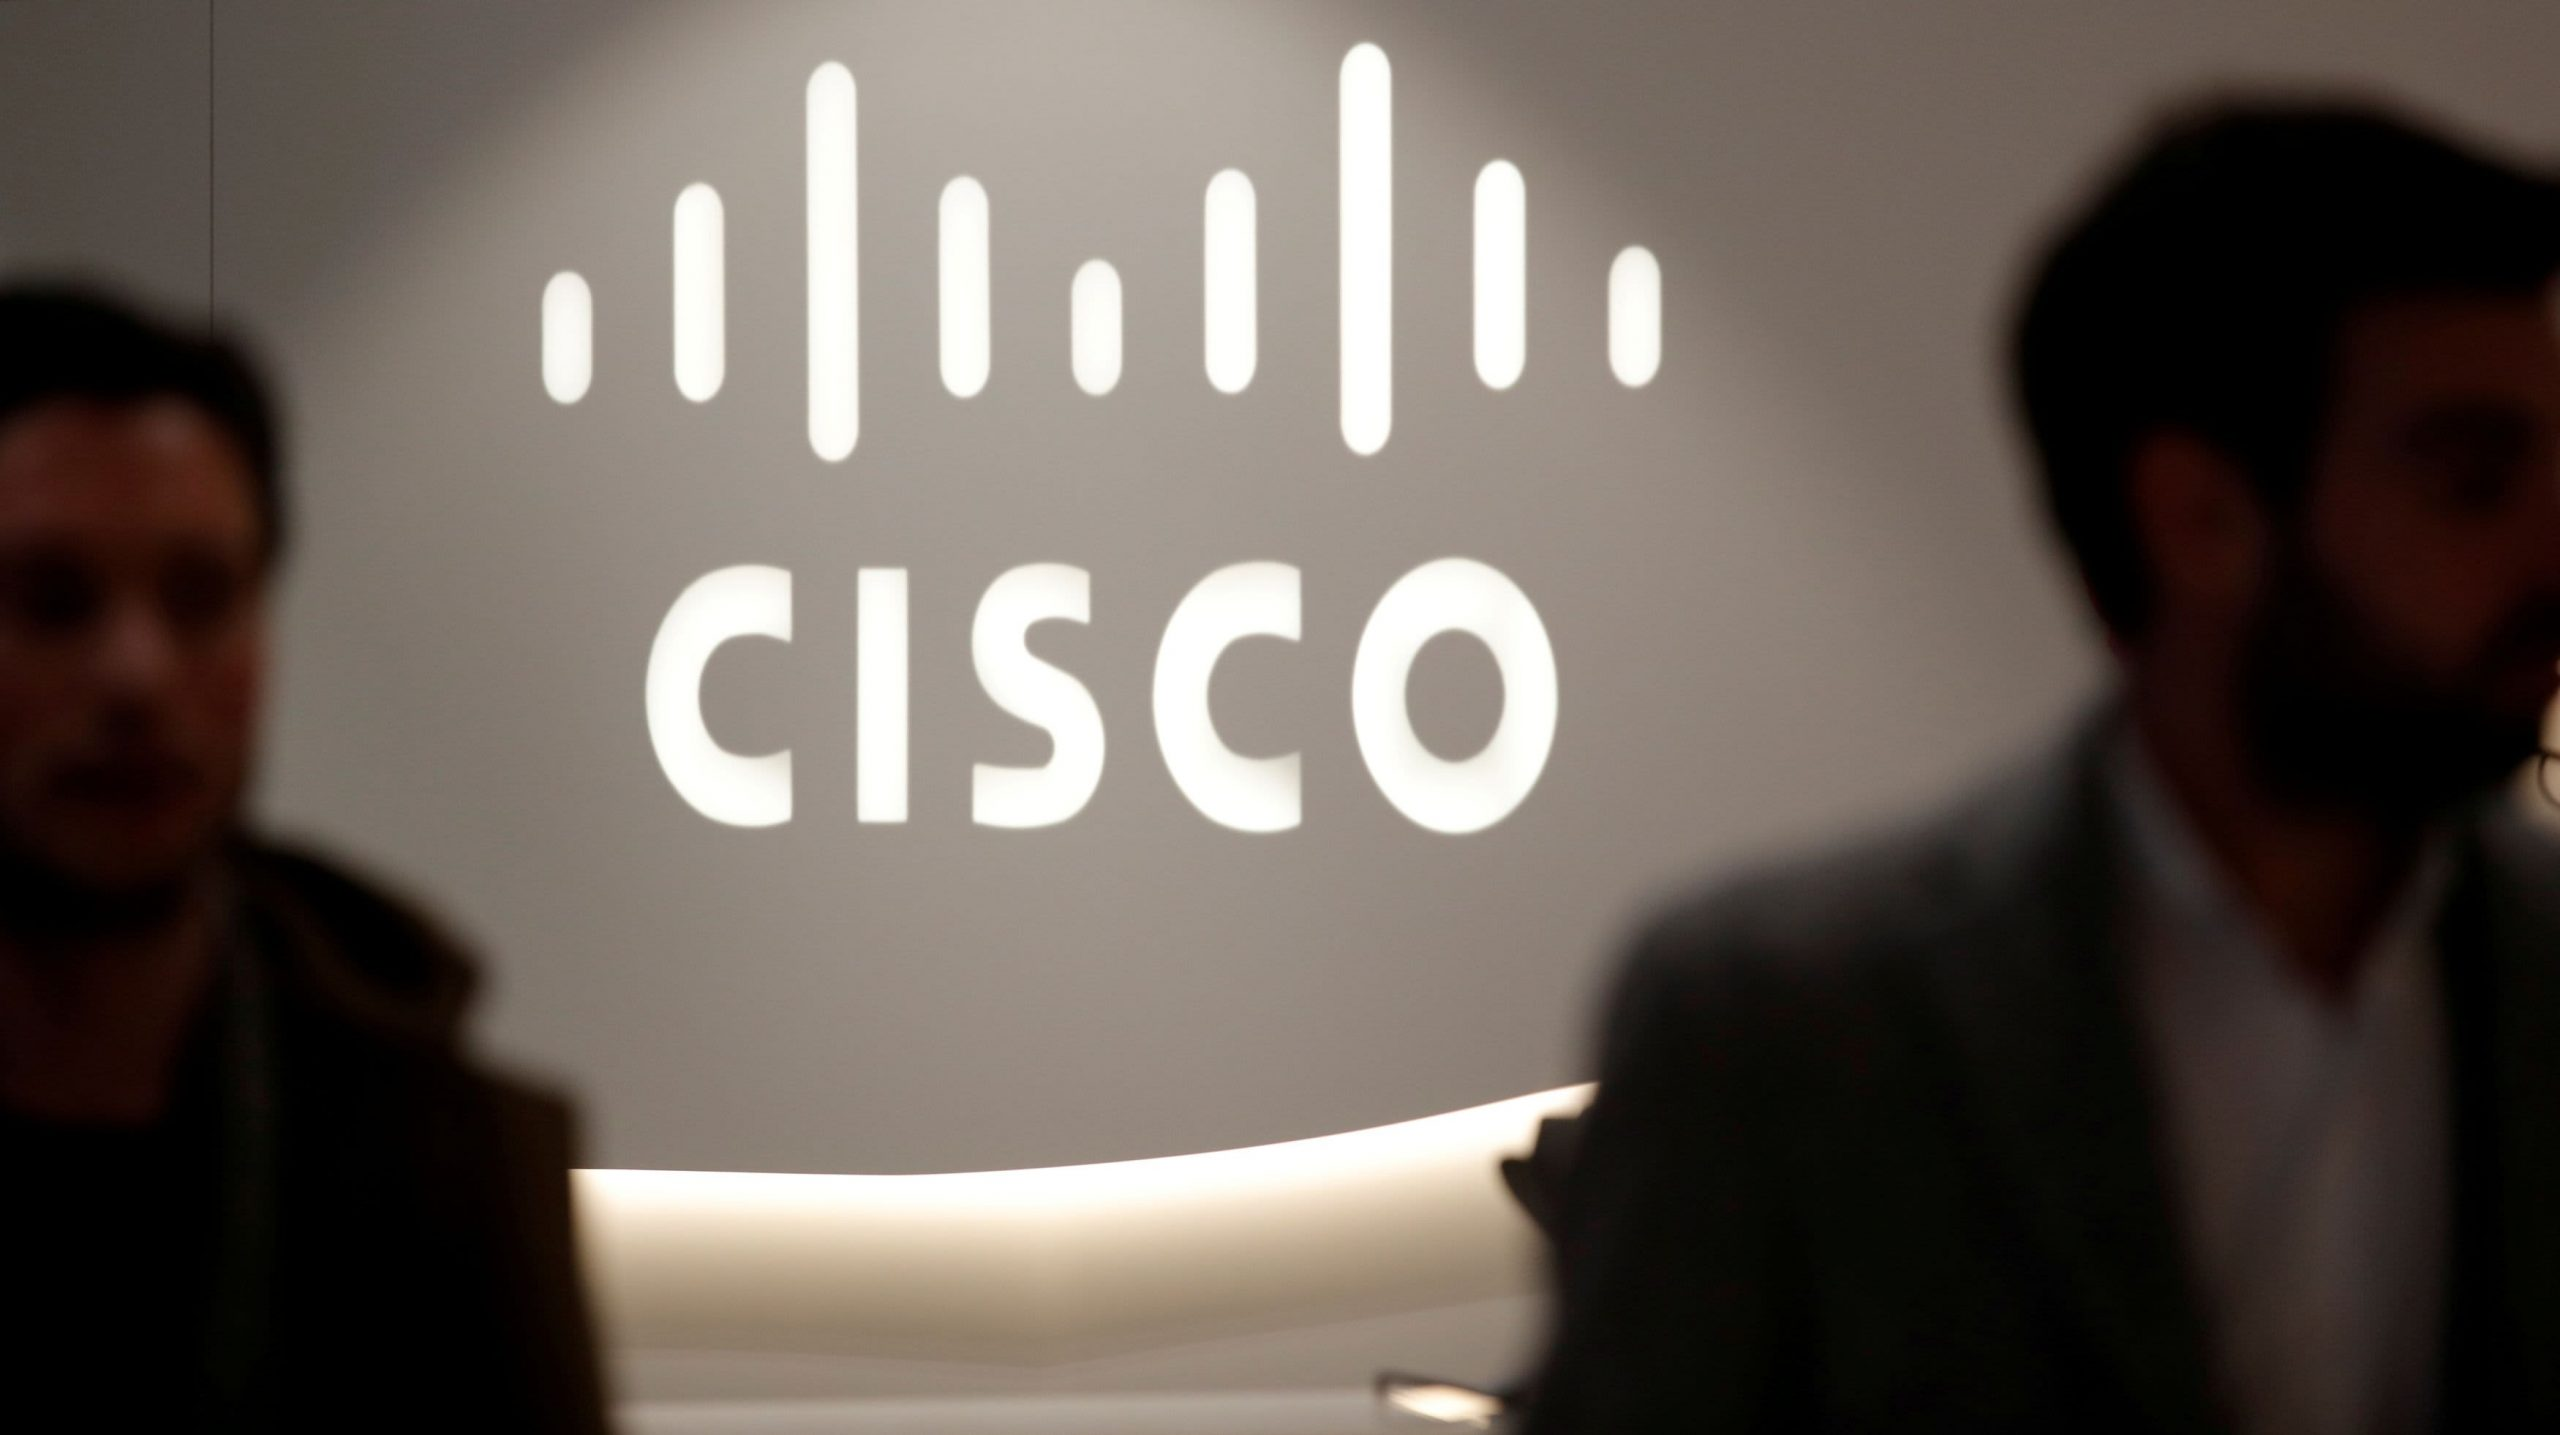 Stocks making the biggest moves after hours: Cisco, L Brands, Synopsys & more